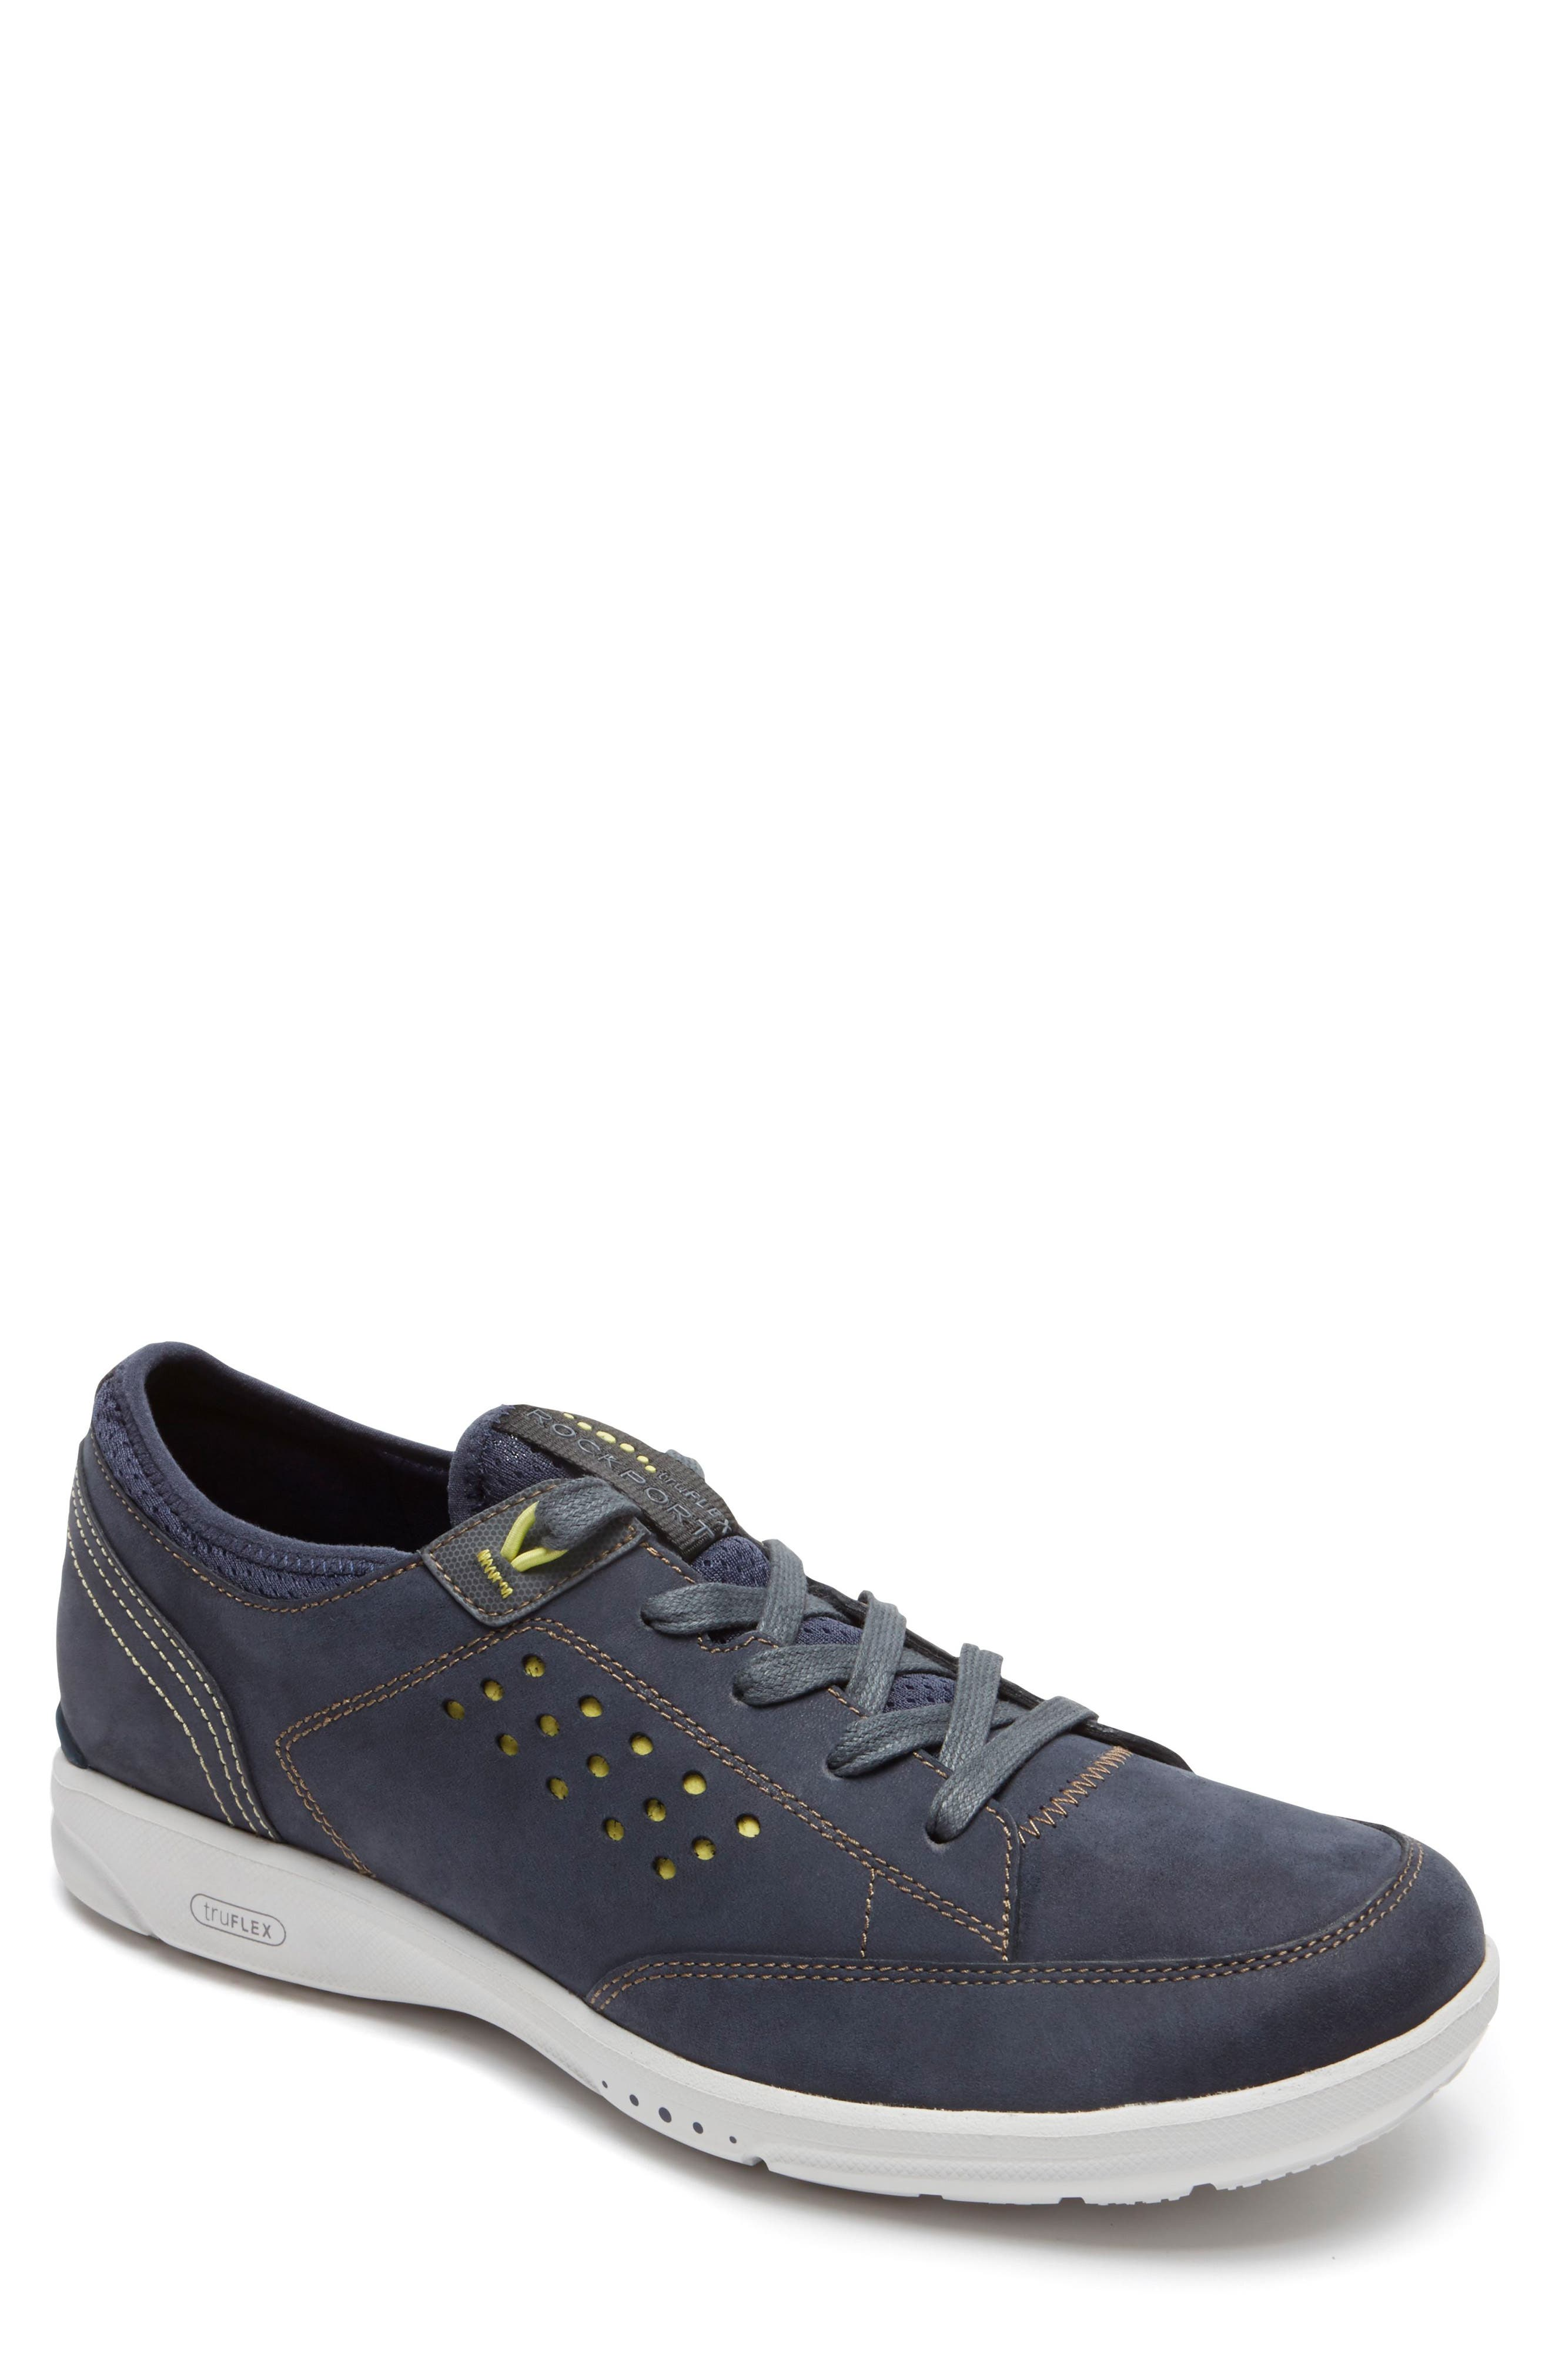 Truflex Sneaker,                         Main,                         color, NEW DRESS BLUES NUBUCK